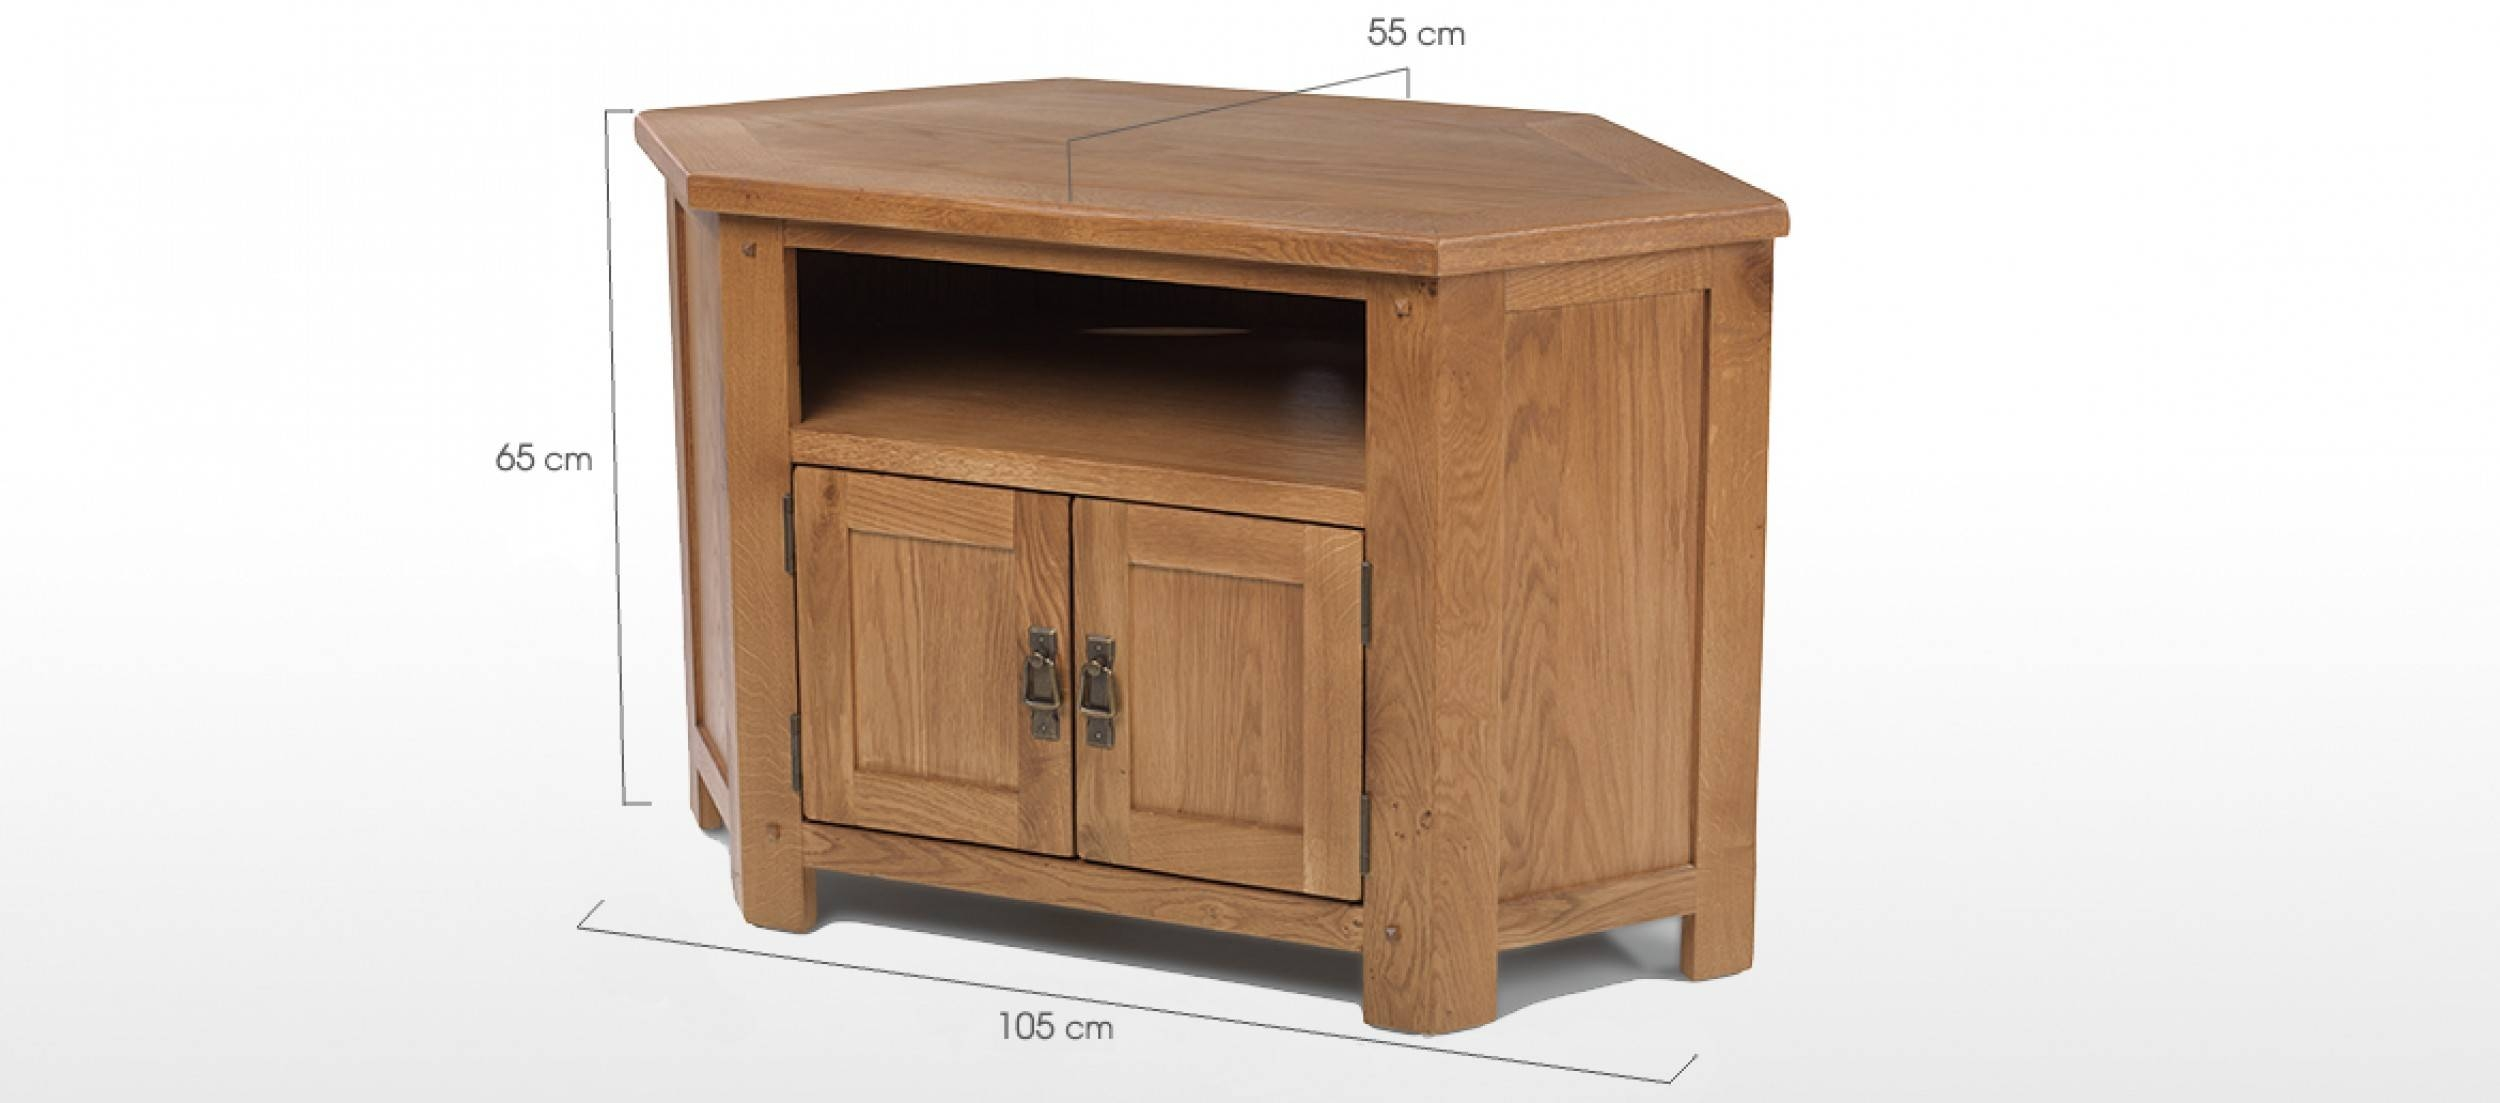 Rustic Oak Corner Tv Cabinet | Quercus Living within Rustic Oak Tv Stands (Image 11 of 15)